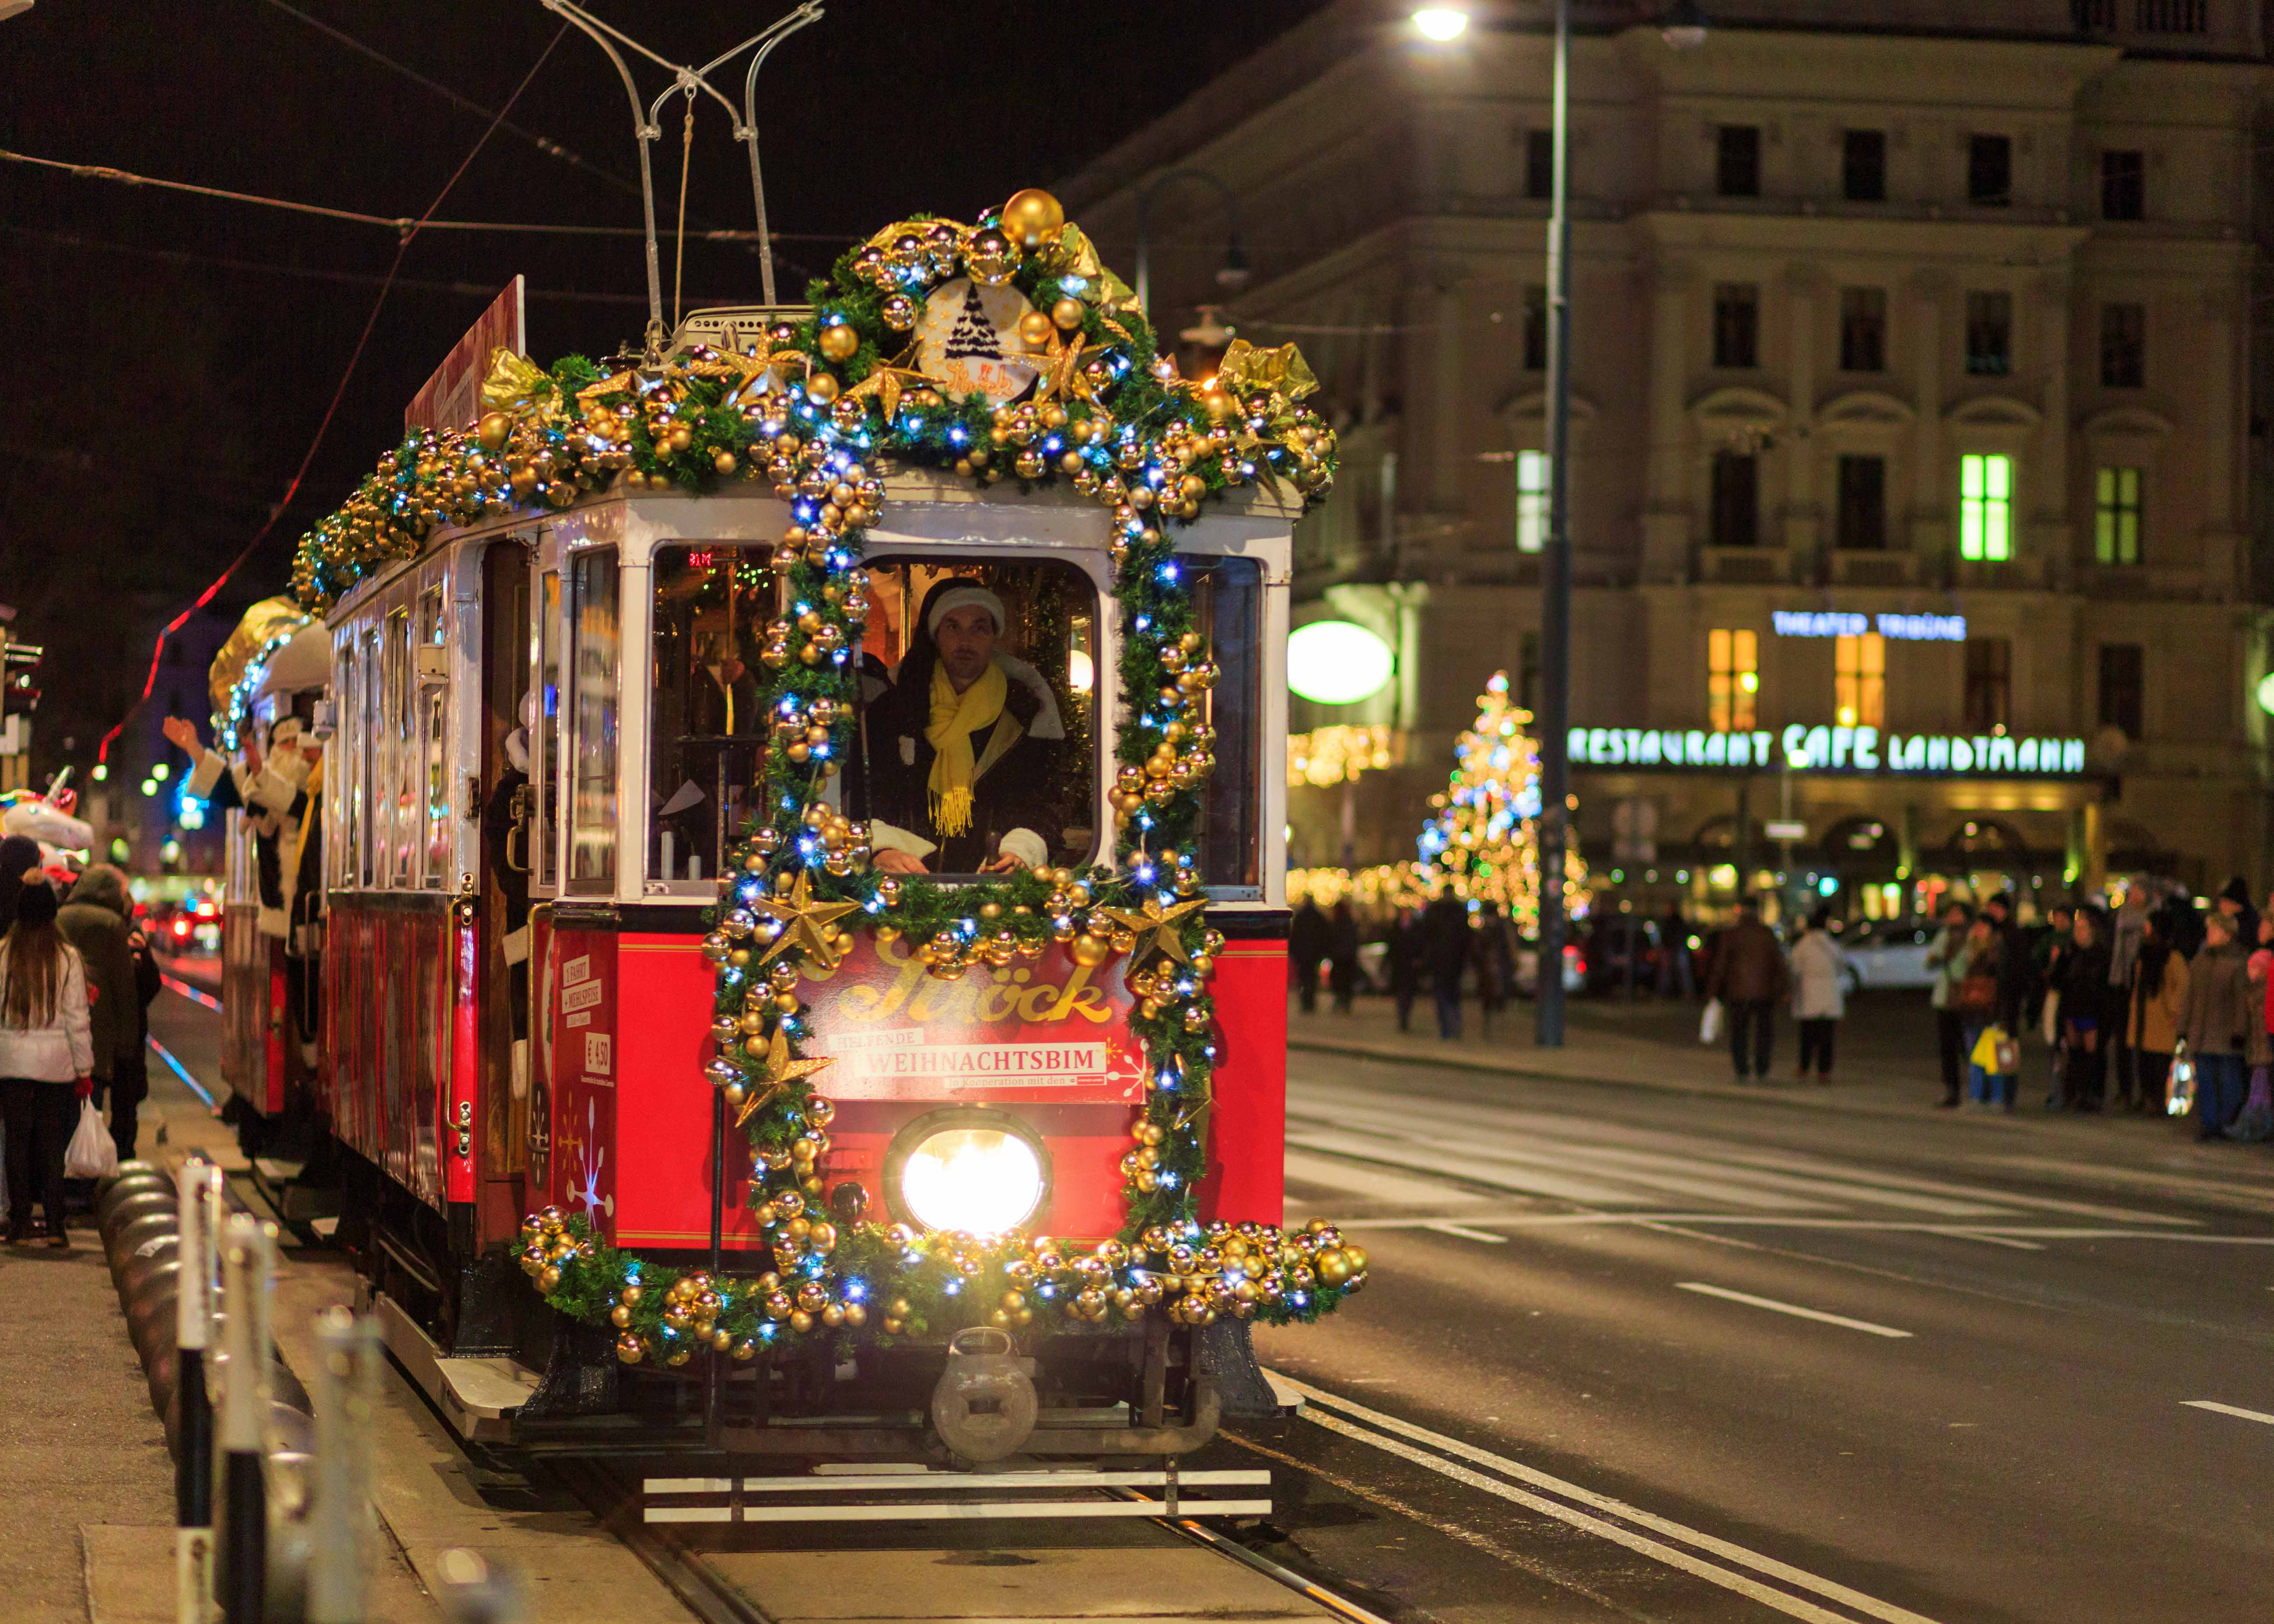 A tram in Vienna at night decprated in Christmas decorations